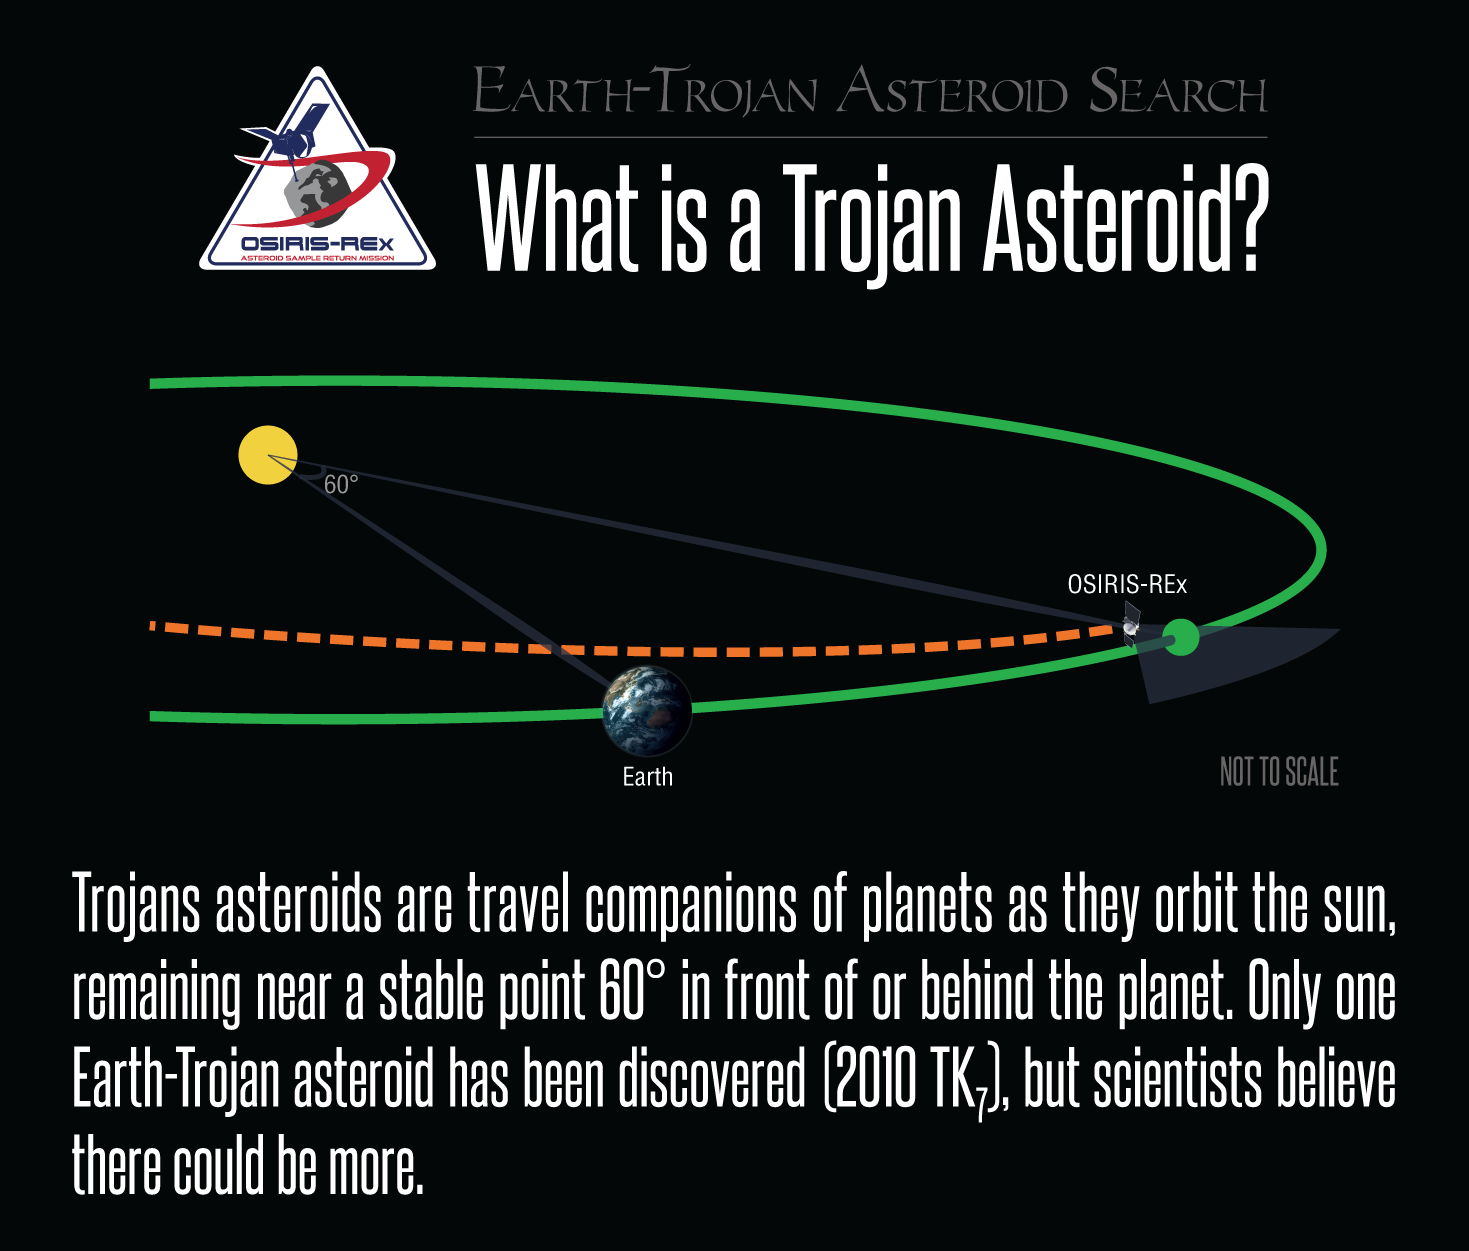 What is a Trojan Asteroid?